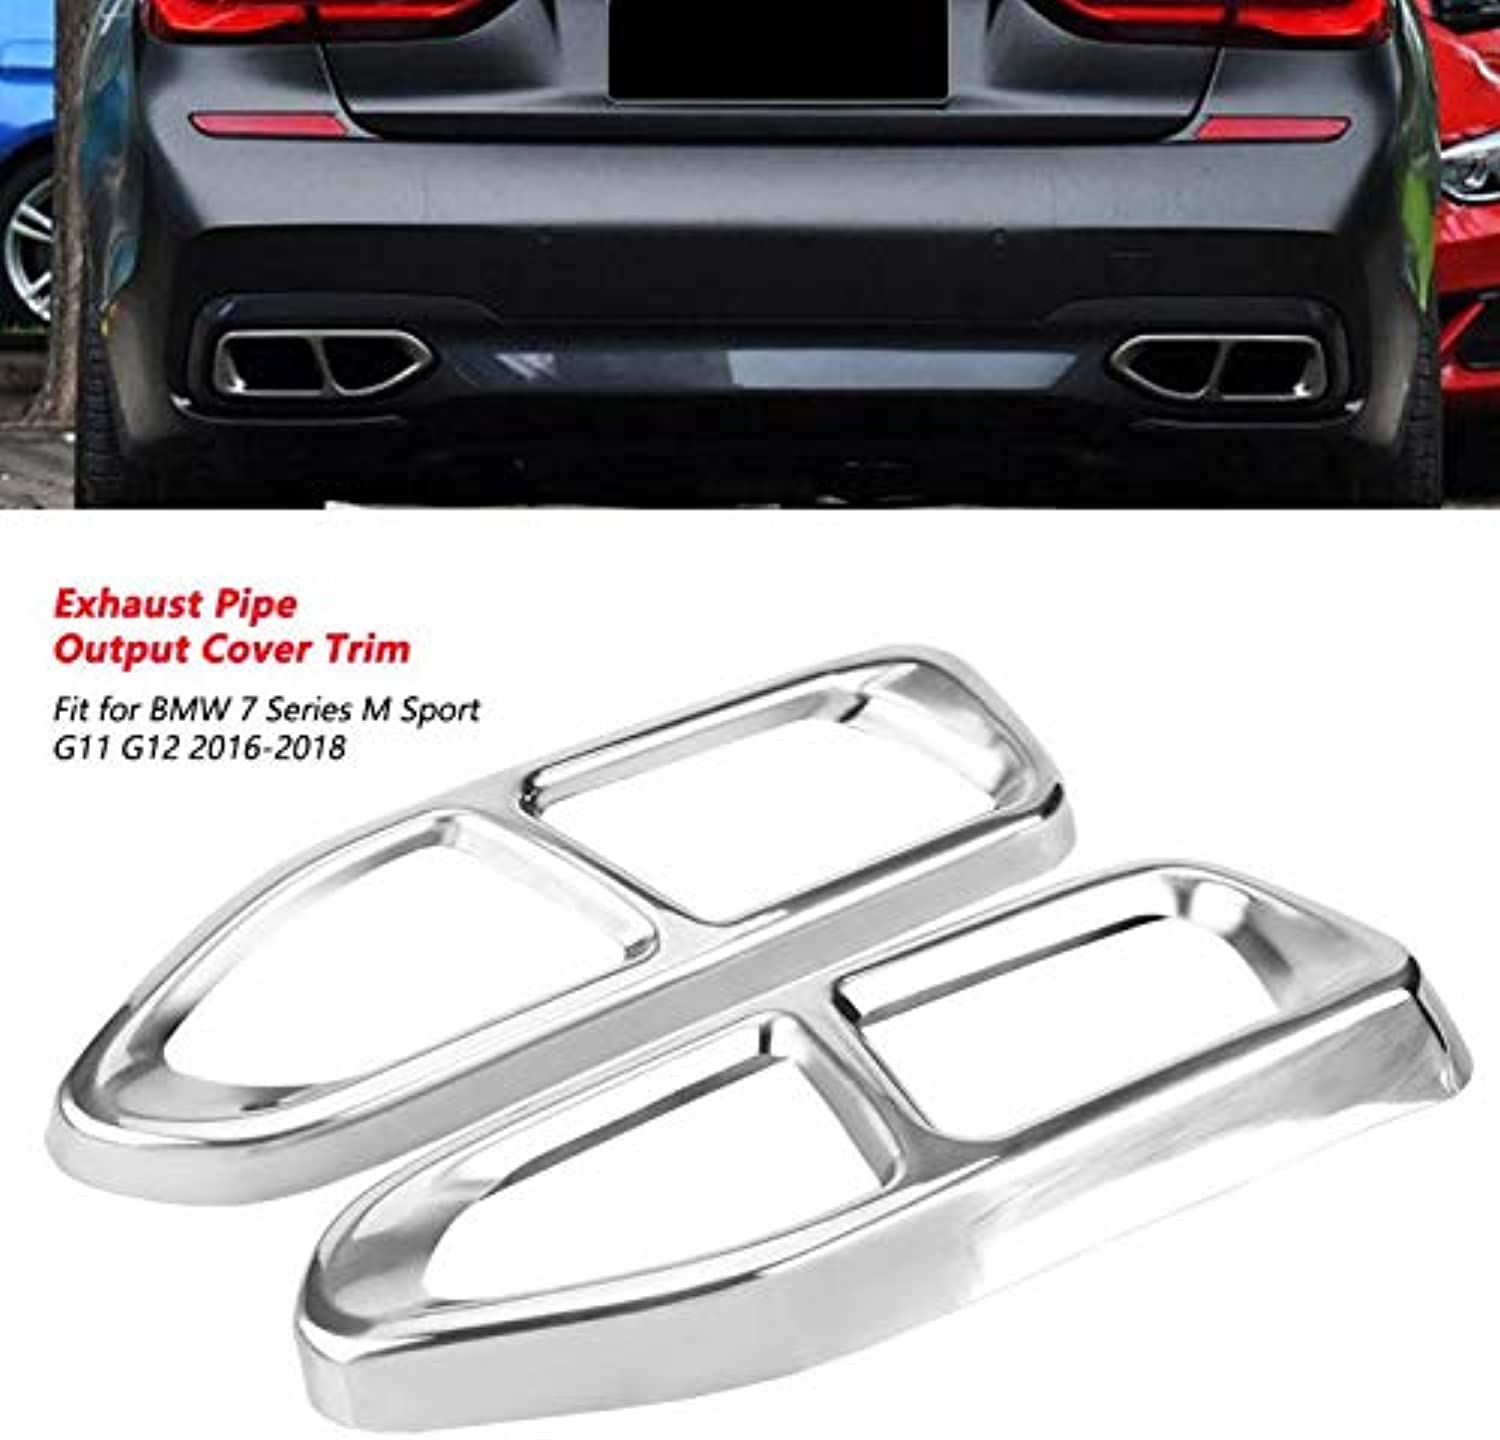 2Pcs Tail Exhaust Pipe Output Cover Trim Frame for BMW 7 Series M Sport G11 G12 2016 2017 2018 High Quality